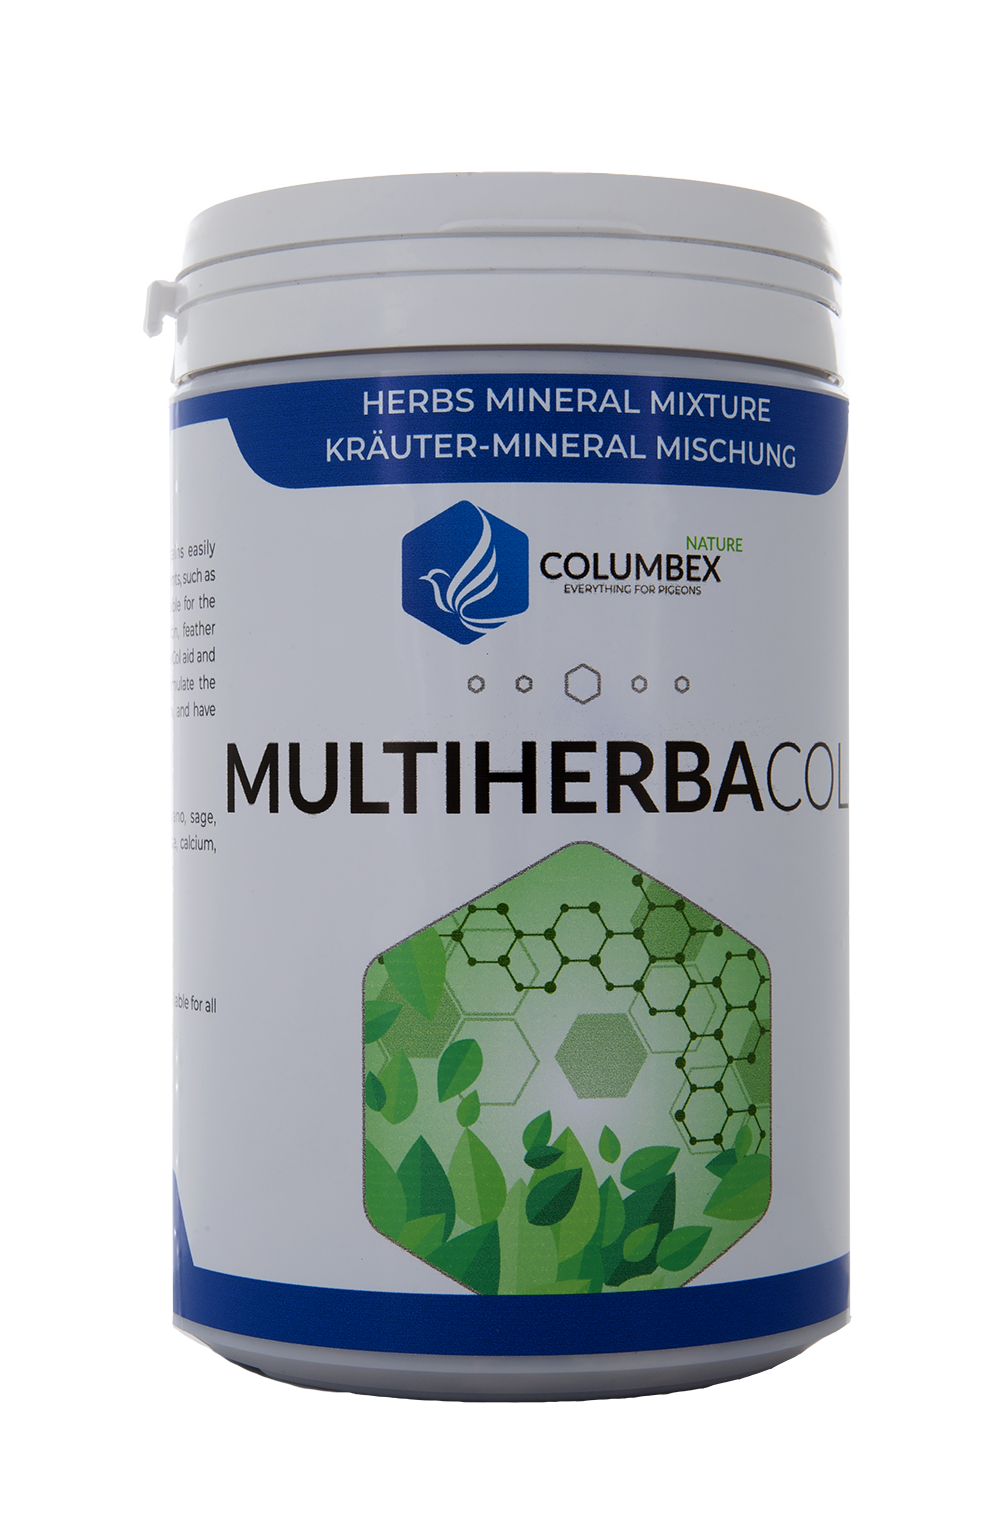 MULTIHERBACOL columbex